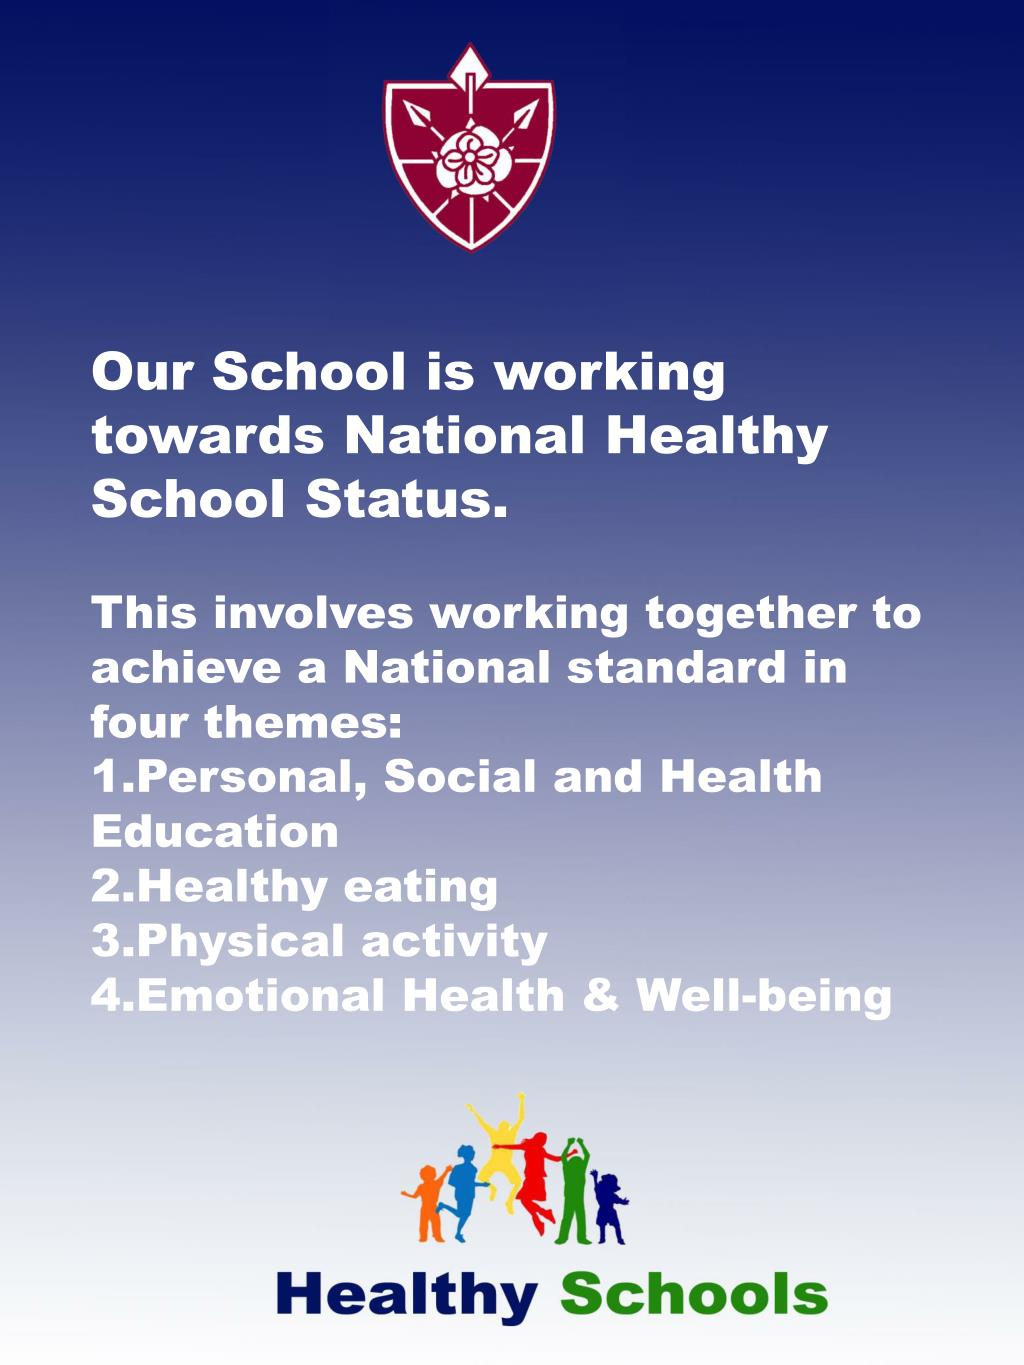 Our School is working towards National Healthy School Status.